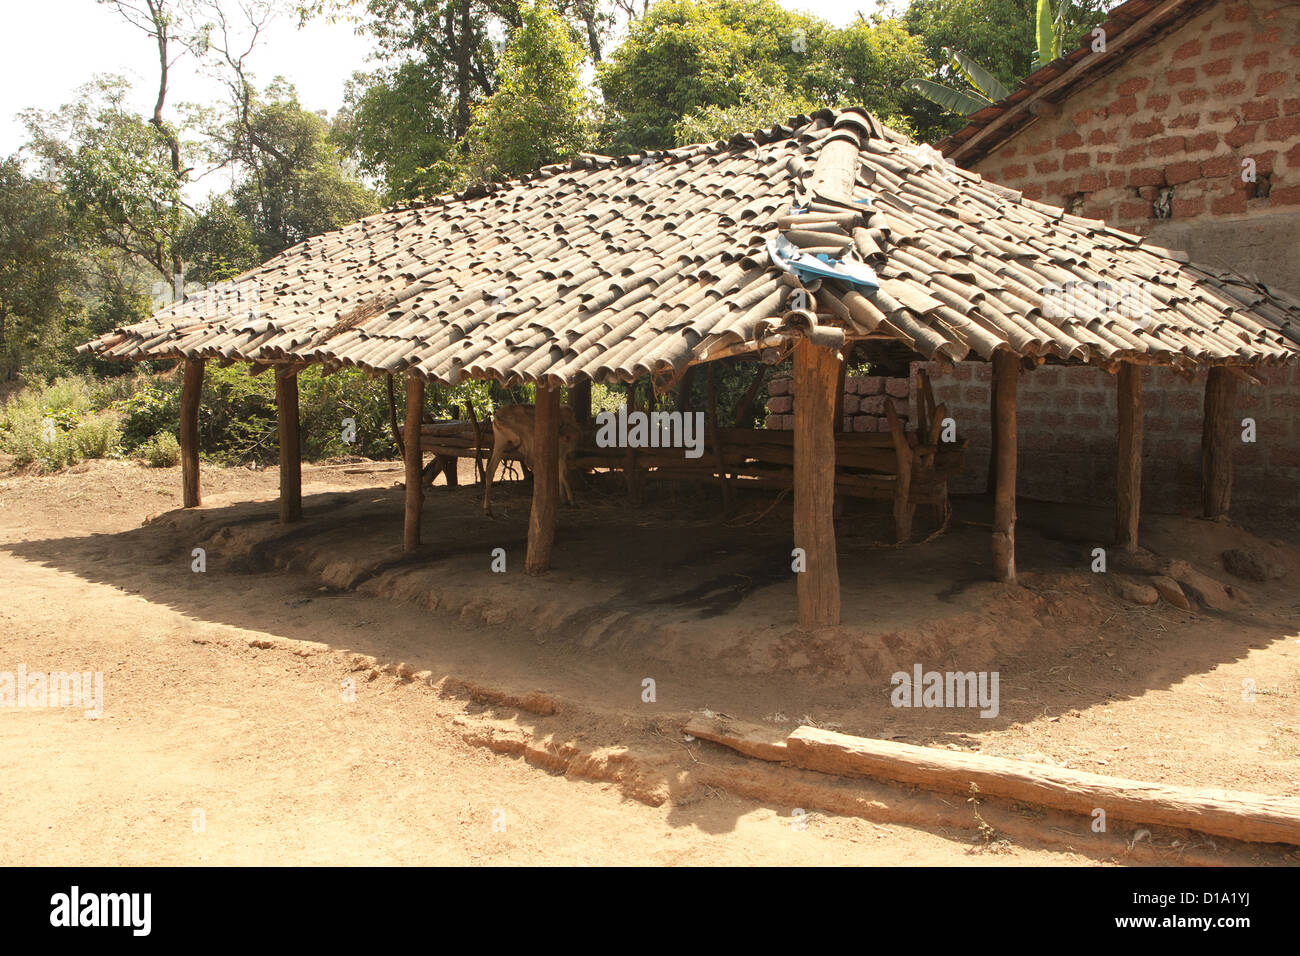 Cattle shed in kuveshi village in karnataka india stock image